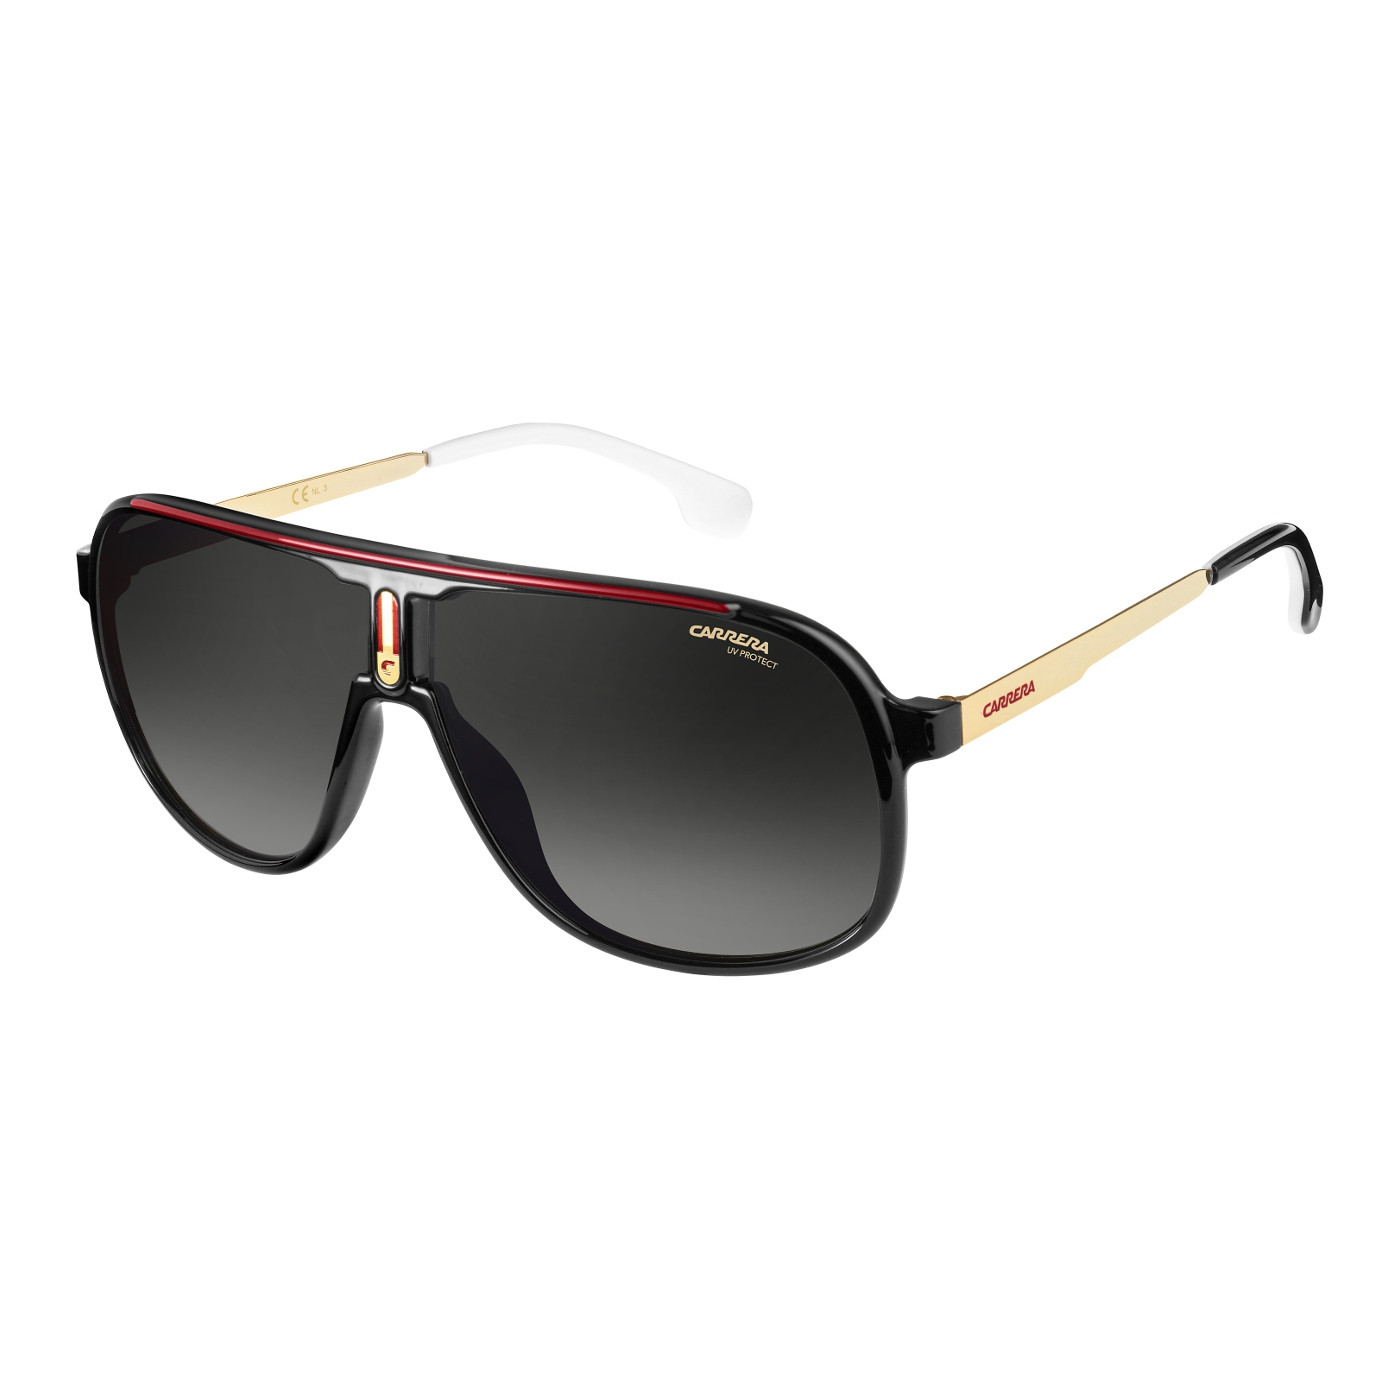 532657eb94be Carrera Black Sunglasses CARRERAS.807.629O - Sunglasses